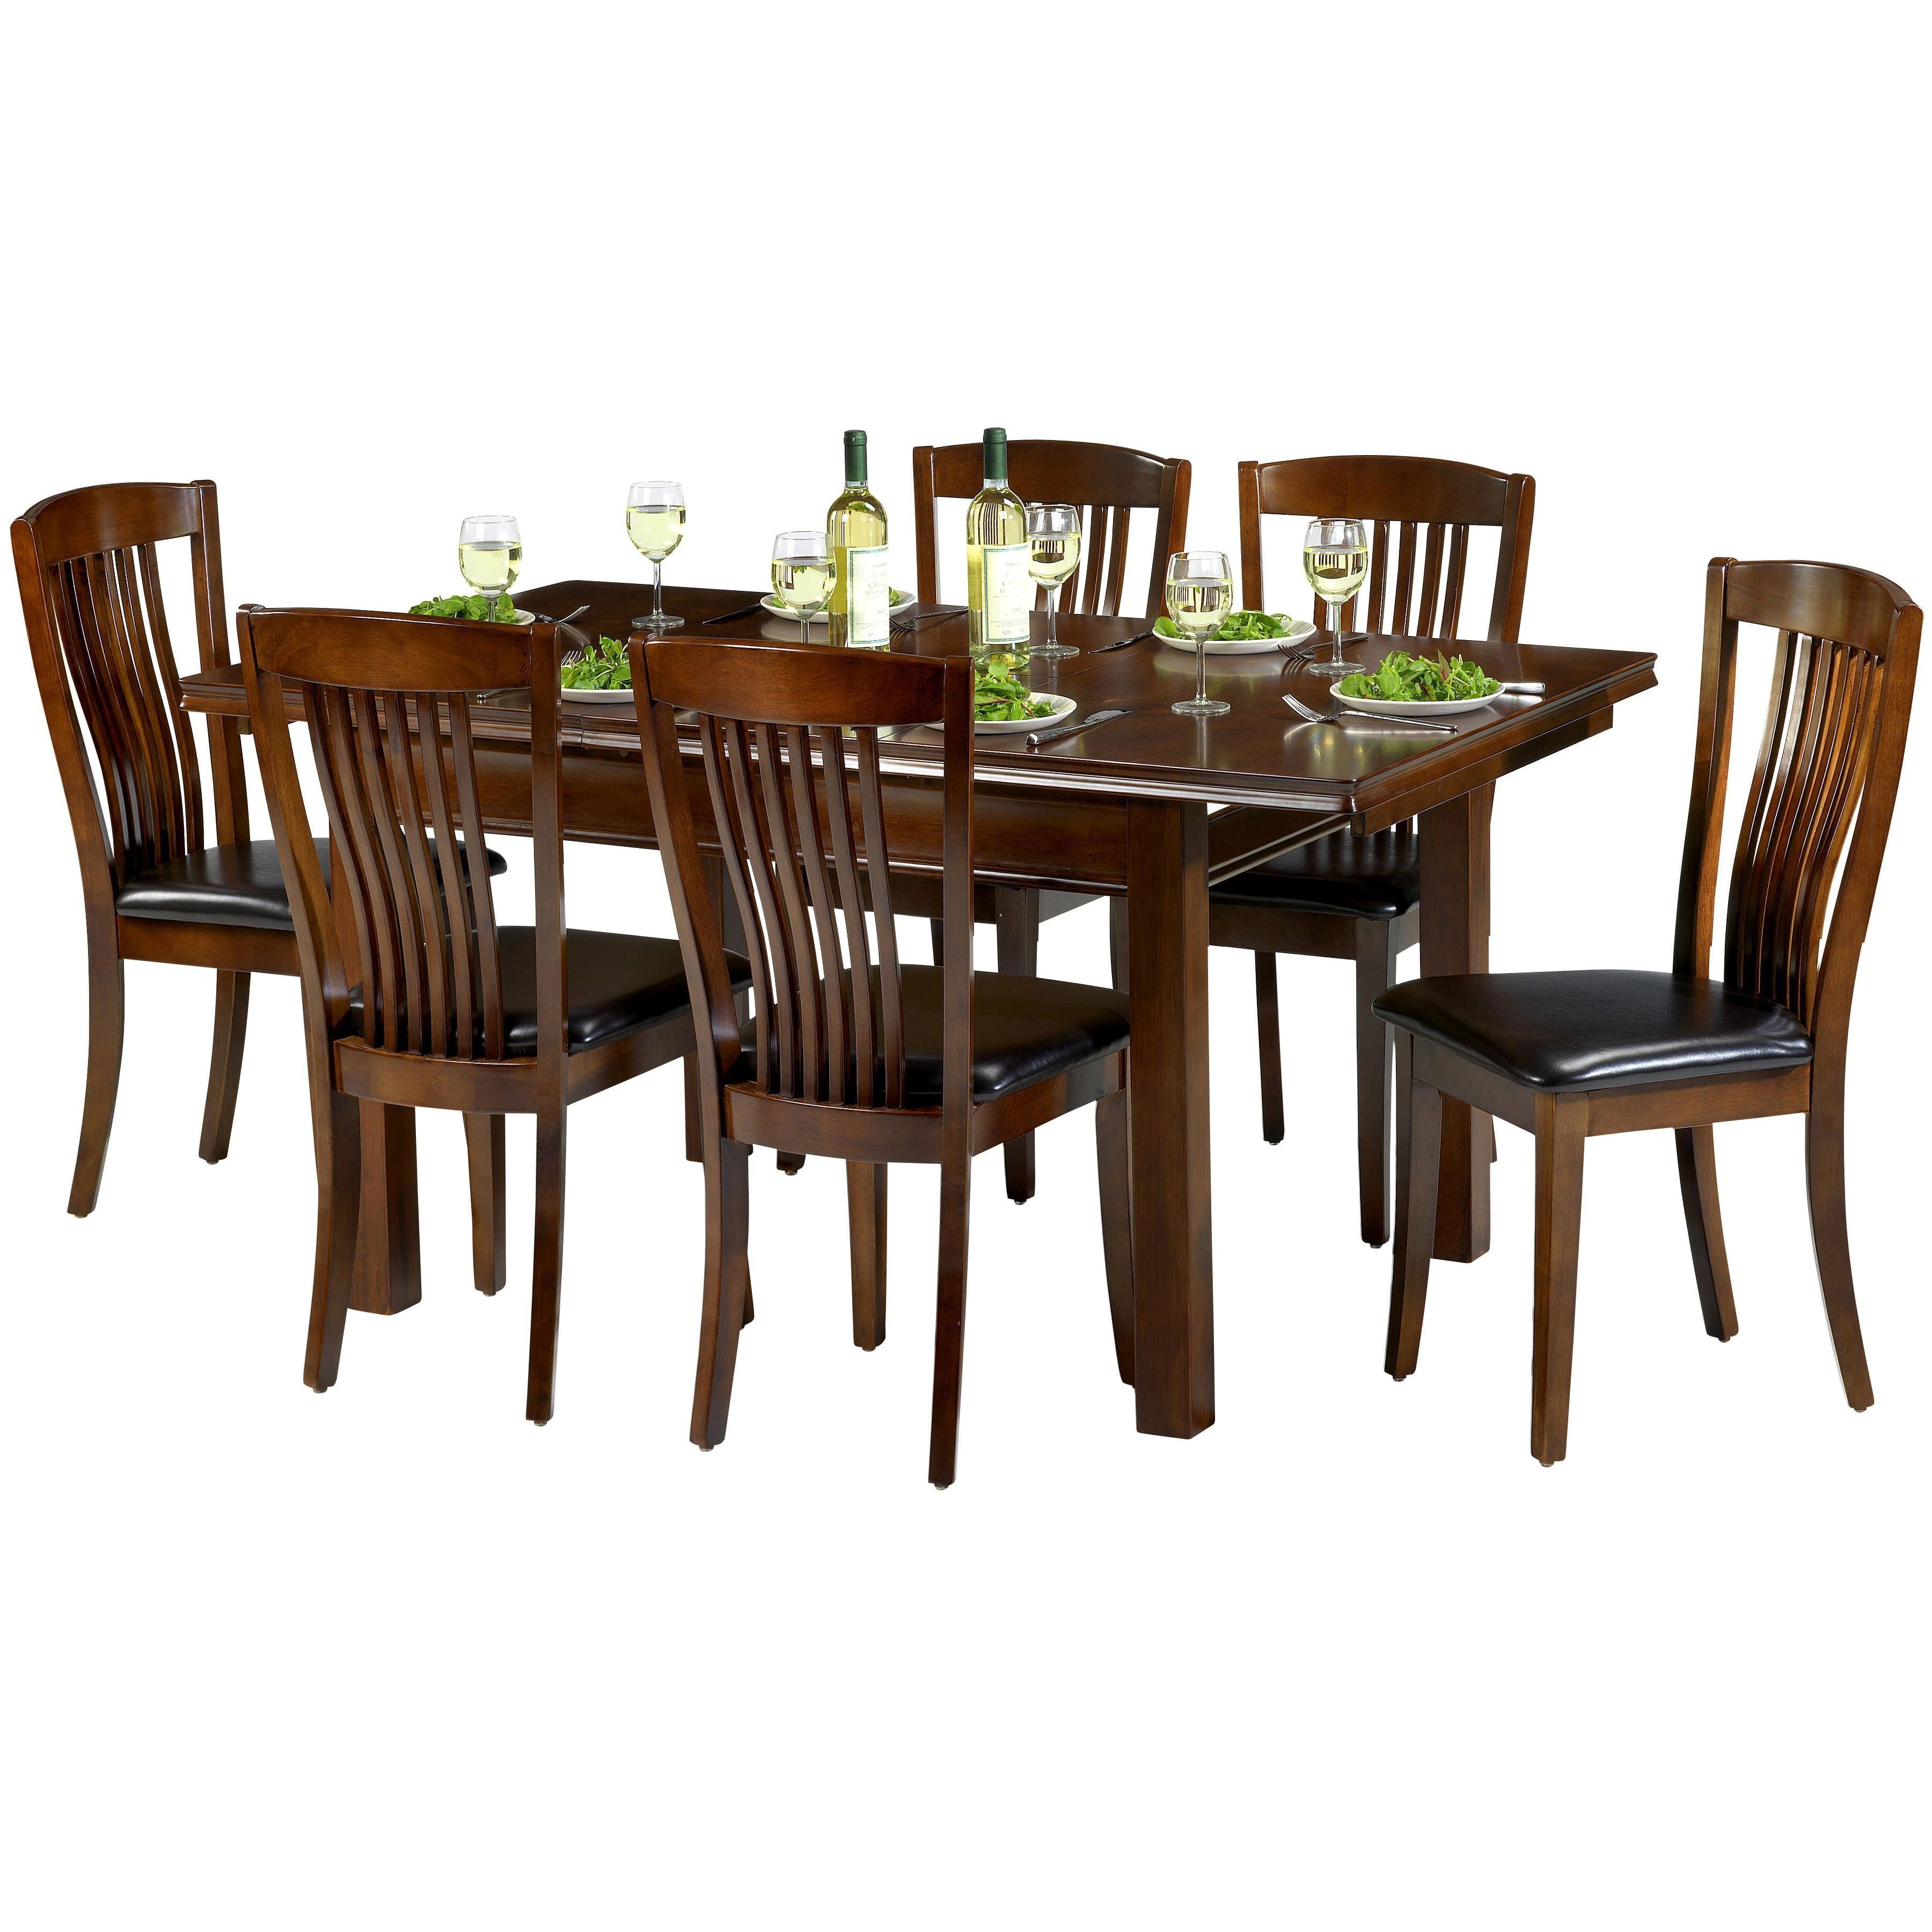 Extendable Dining Tables And 6 Chairs Intended For Most Up To Date Mahogany Finish Extending Extendable Dining Table And Chair Set With (View 22 of 25)